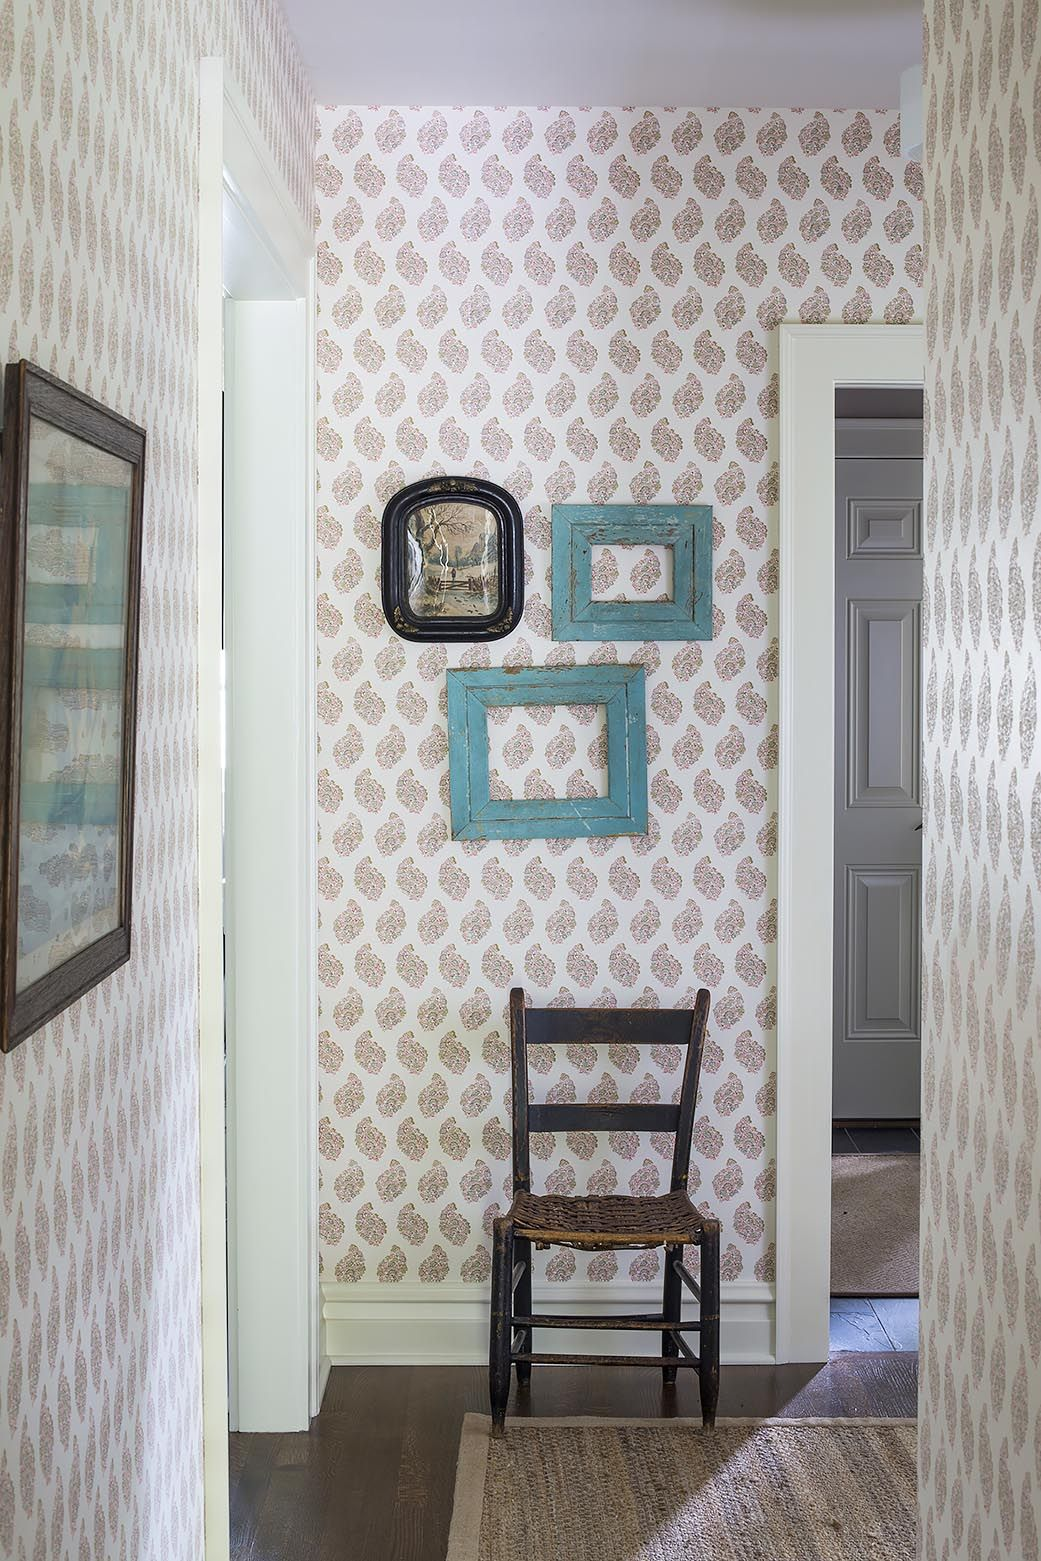 Wallpaper on hallway  Paisley wallpaper R Cartwright Design  Des Moines Iowa Interior